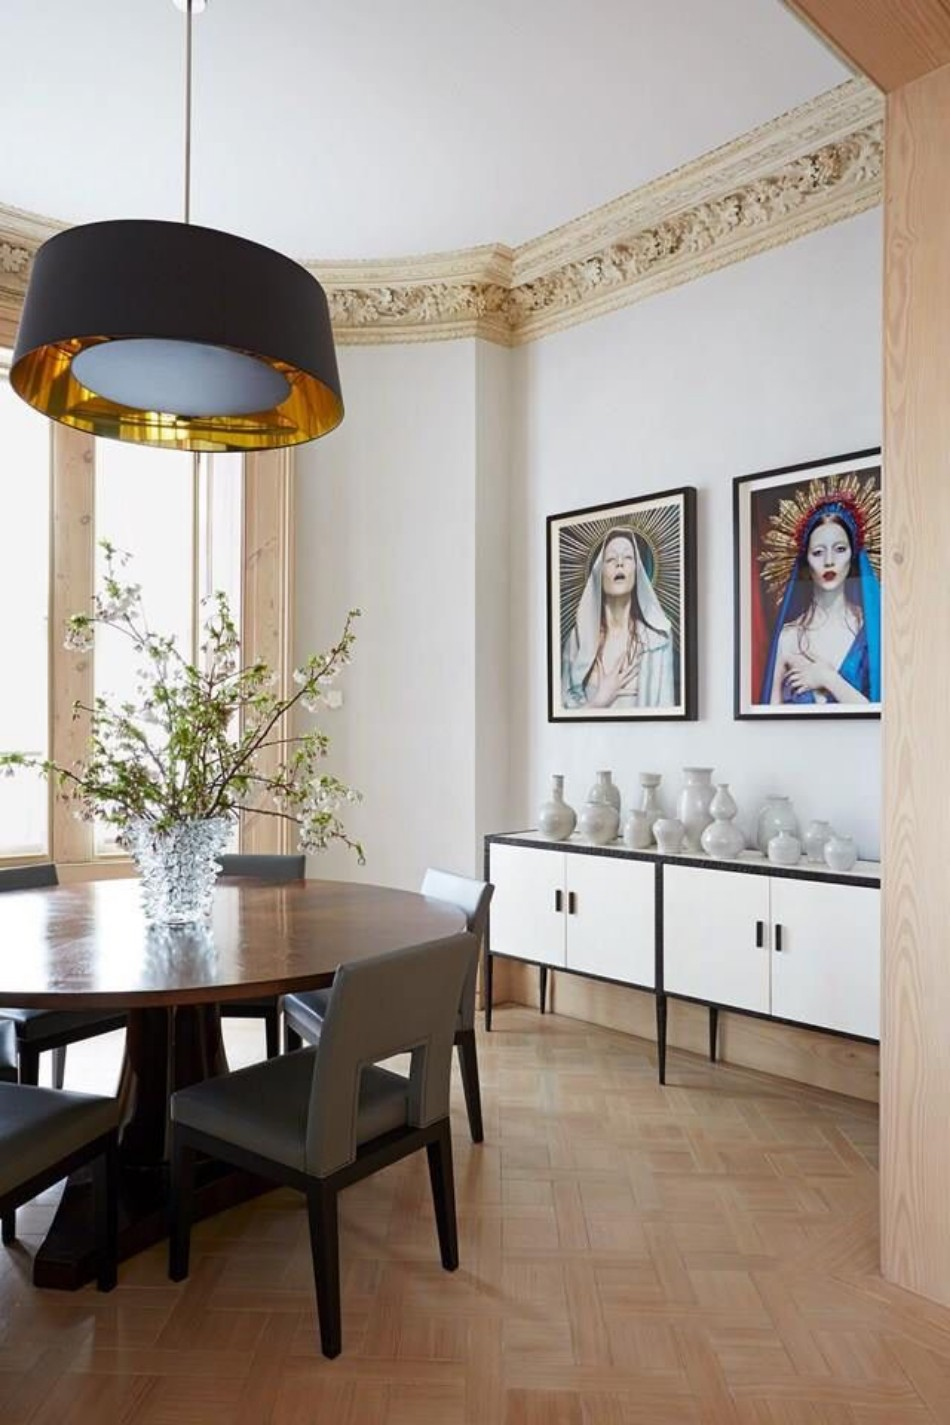 5 Dining Room Ideas By Peter Mikic To Get Inspired | www.bocadolobo.com #interiordesign #interiors #petermikic #top100interiordesigners #luxurydesign #luxuryhouses #moderndiningtables #diningtable #diningroom @moderndiningtables peter mikic 5 Dining Room Ideas By Peter Mikic To Get Inspired 5 Dining Room Ideas By Peter Mikic To Get Inspired 2